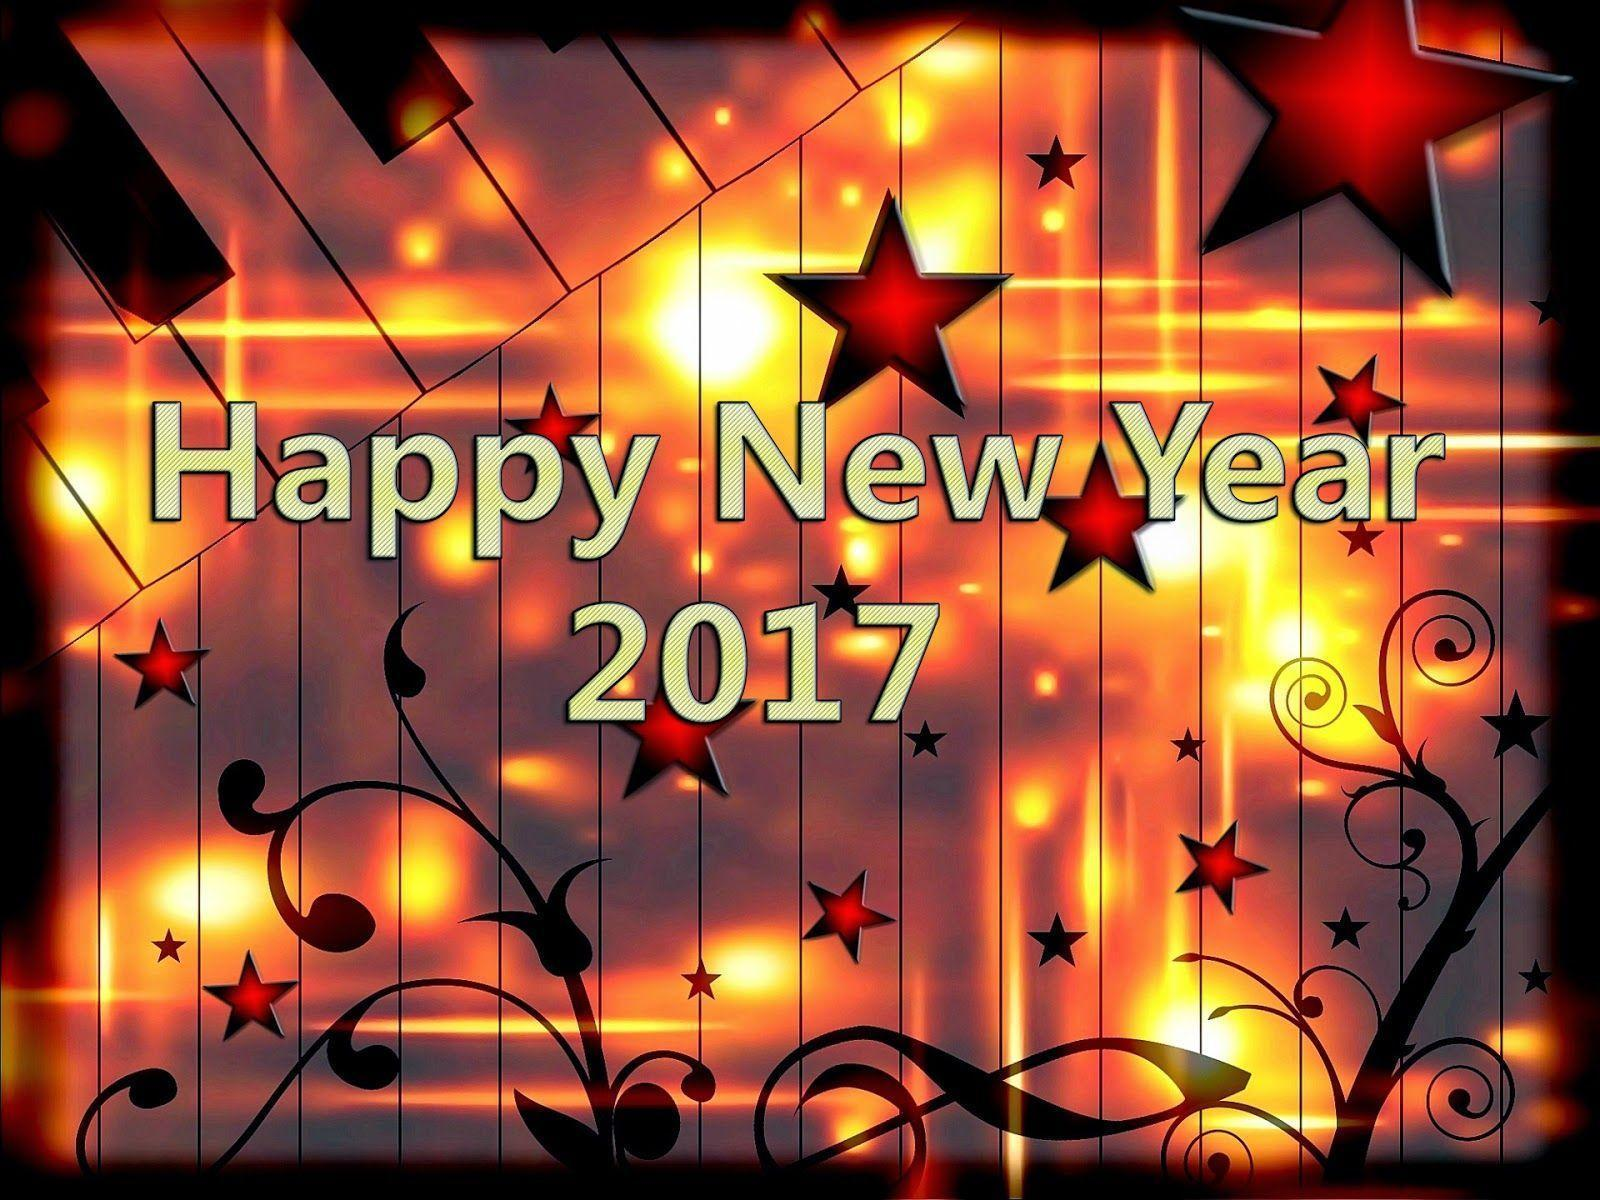 New Year Greetings Wallpapers 2017 Wallpaper Cave